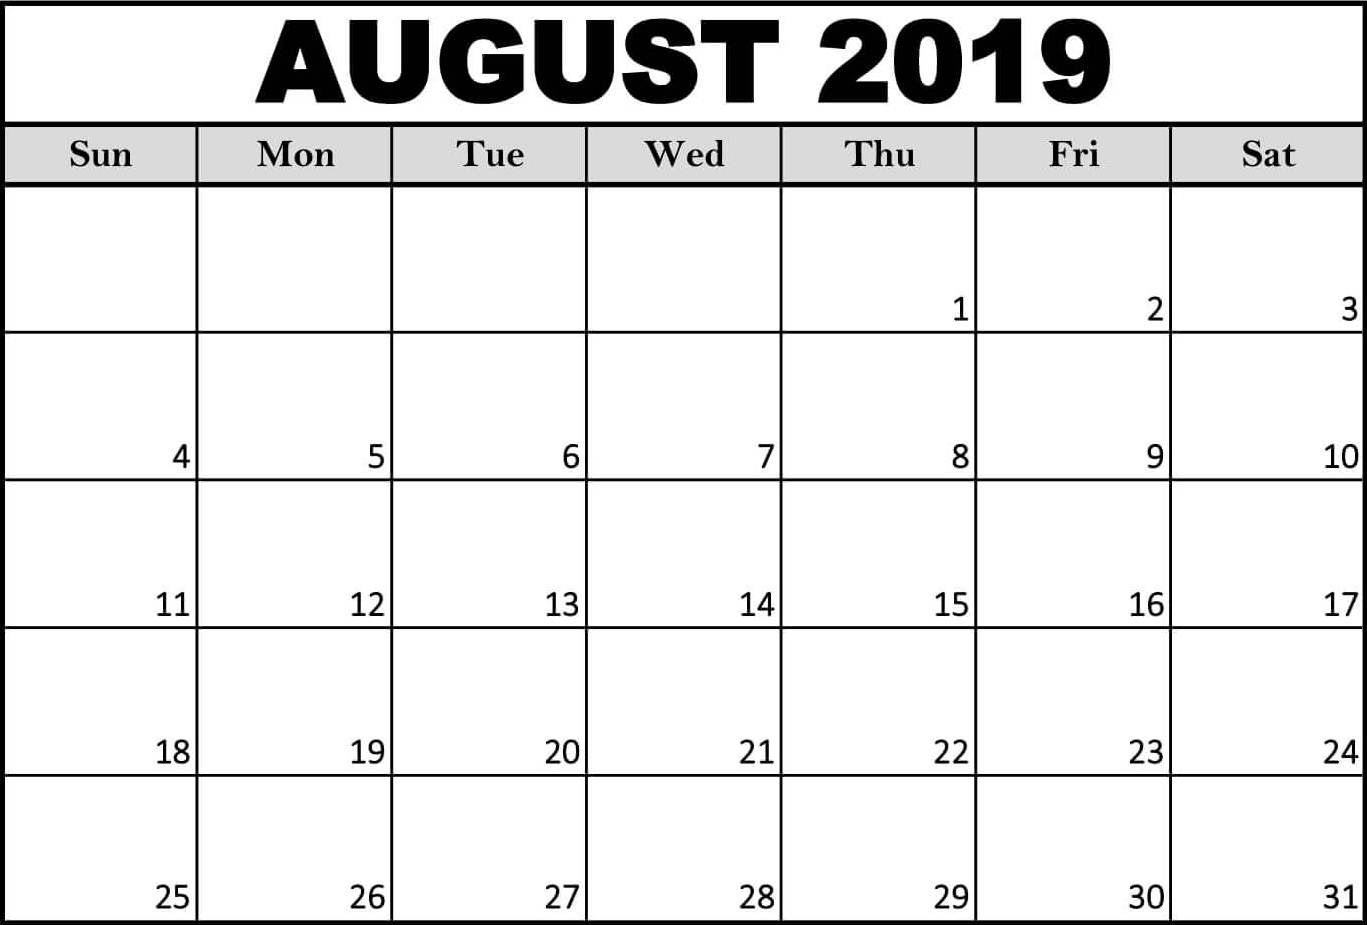 Free Printable August 2019 Calendar Template In Pdf Word Excel with regard to Calendar Template For August